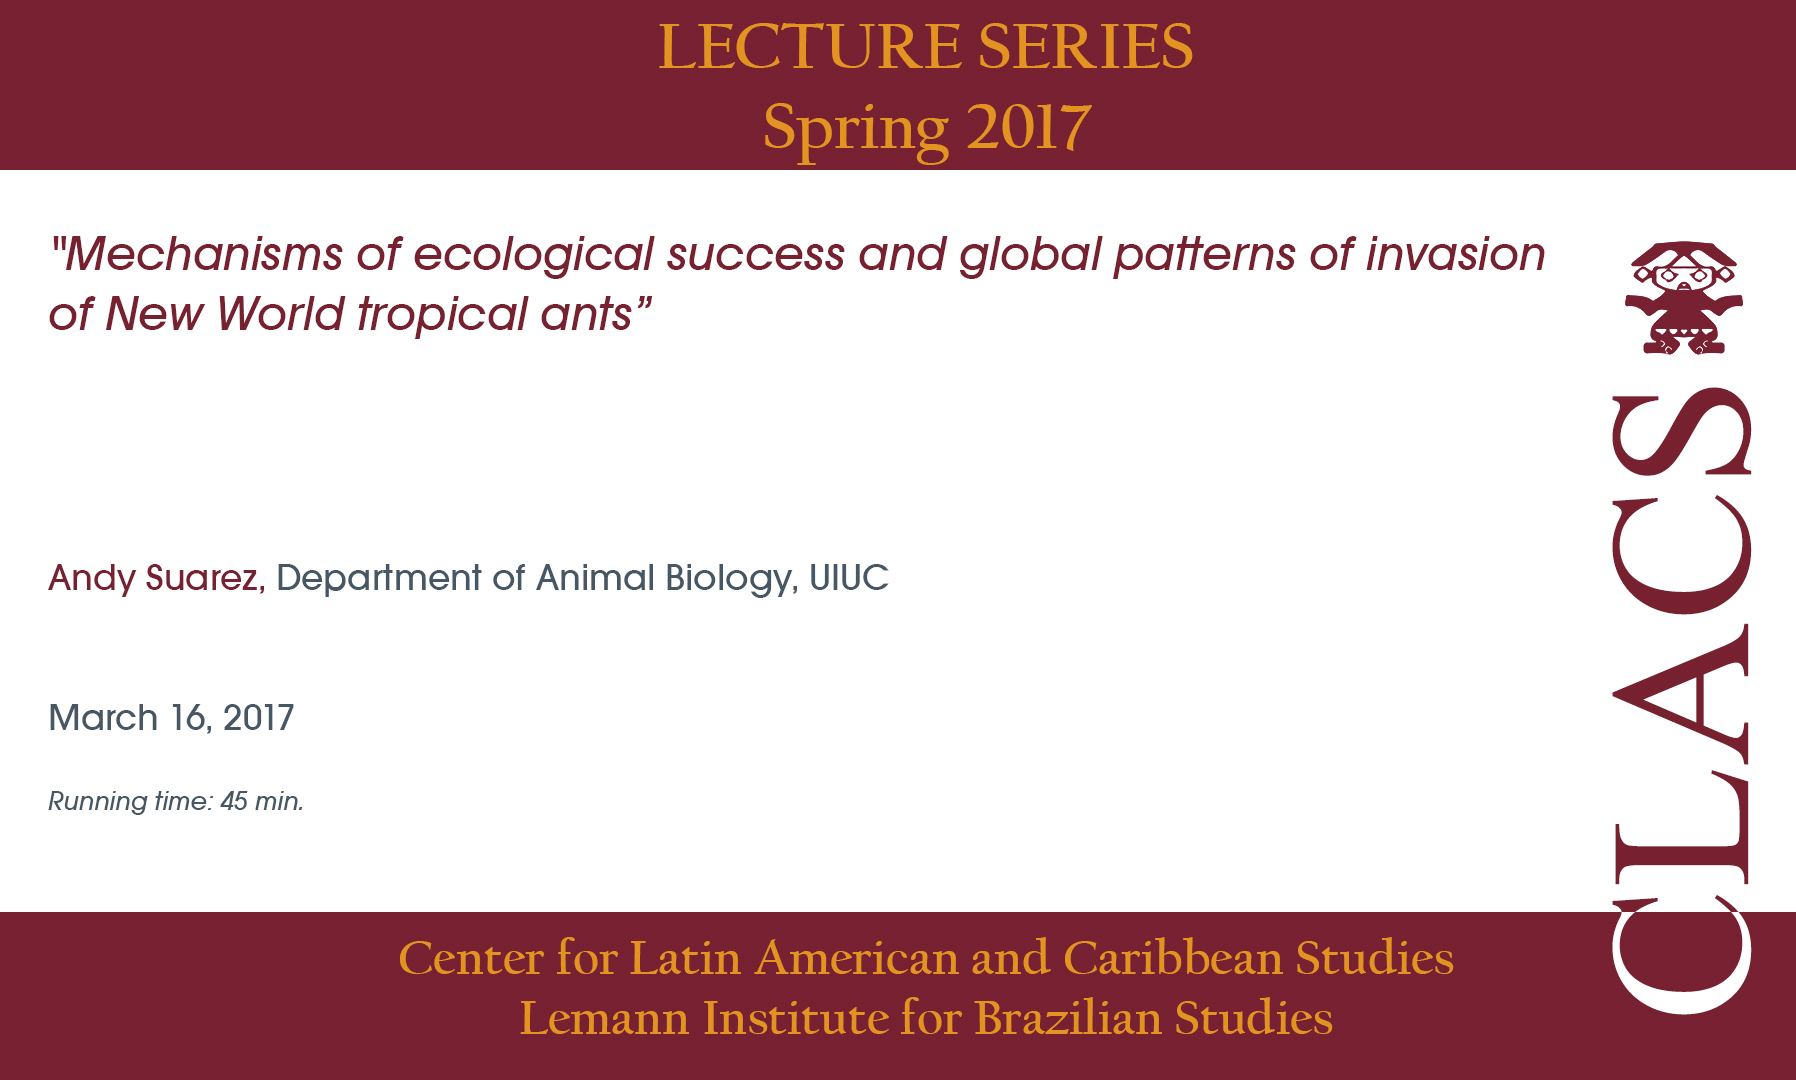 Mechanisms of ecological success and global patterns of invasion of New World tropical ants